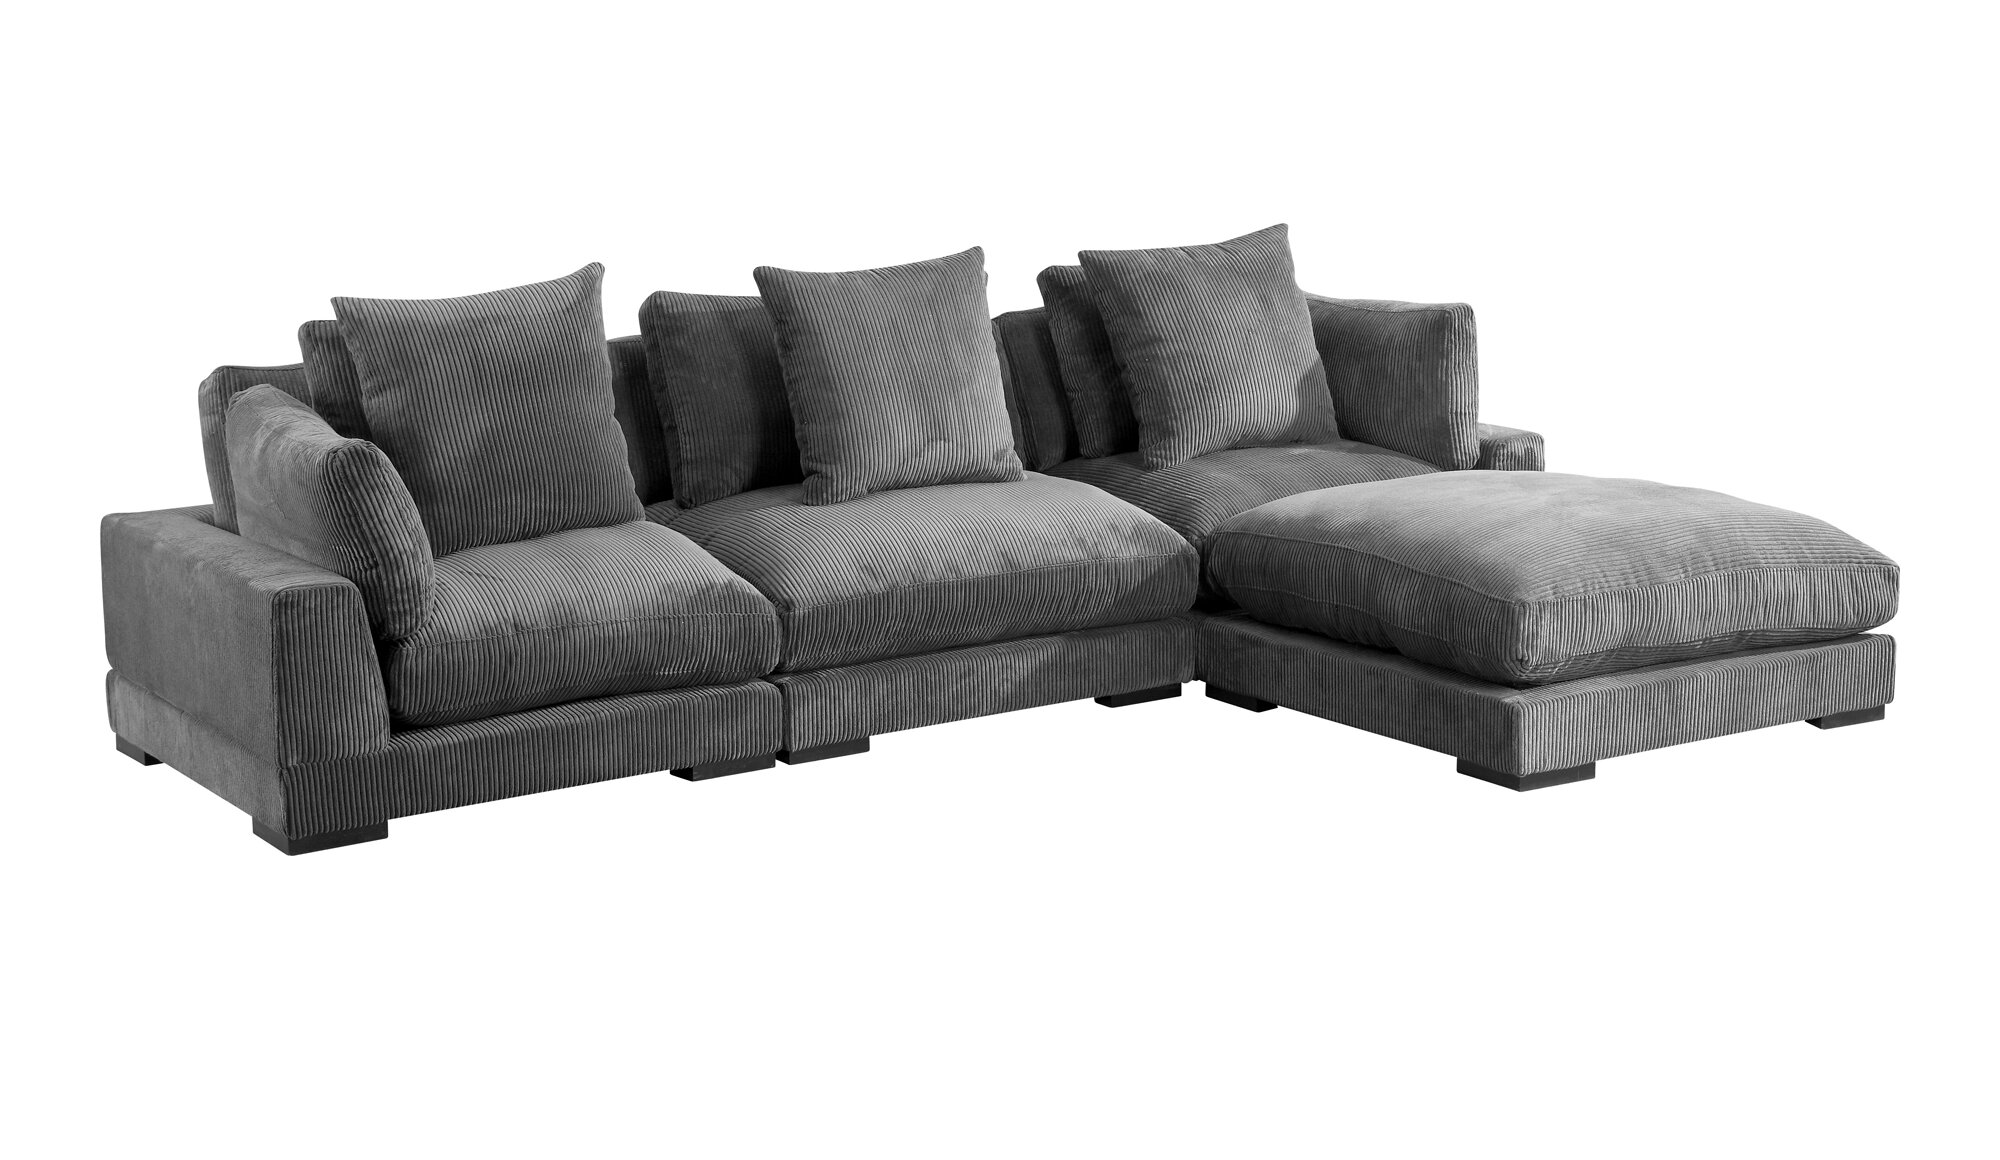 Lytle 130 5 Reversible Modular Sectional With Ottoman Allmodern